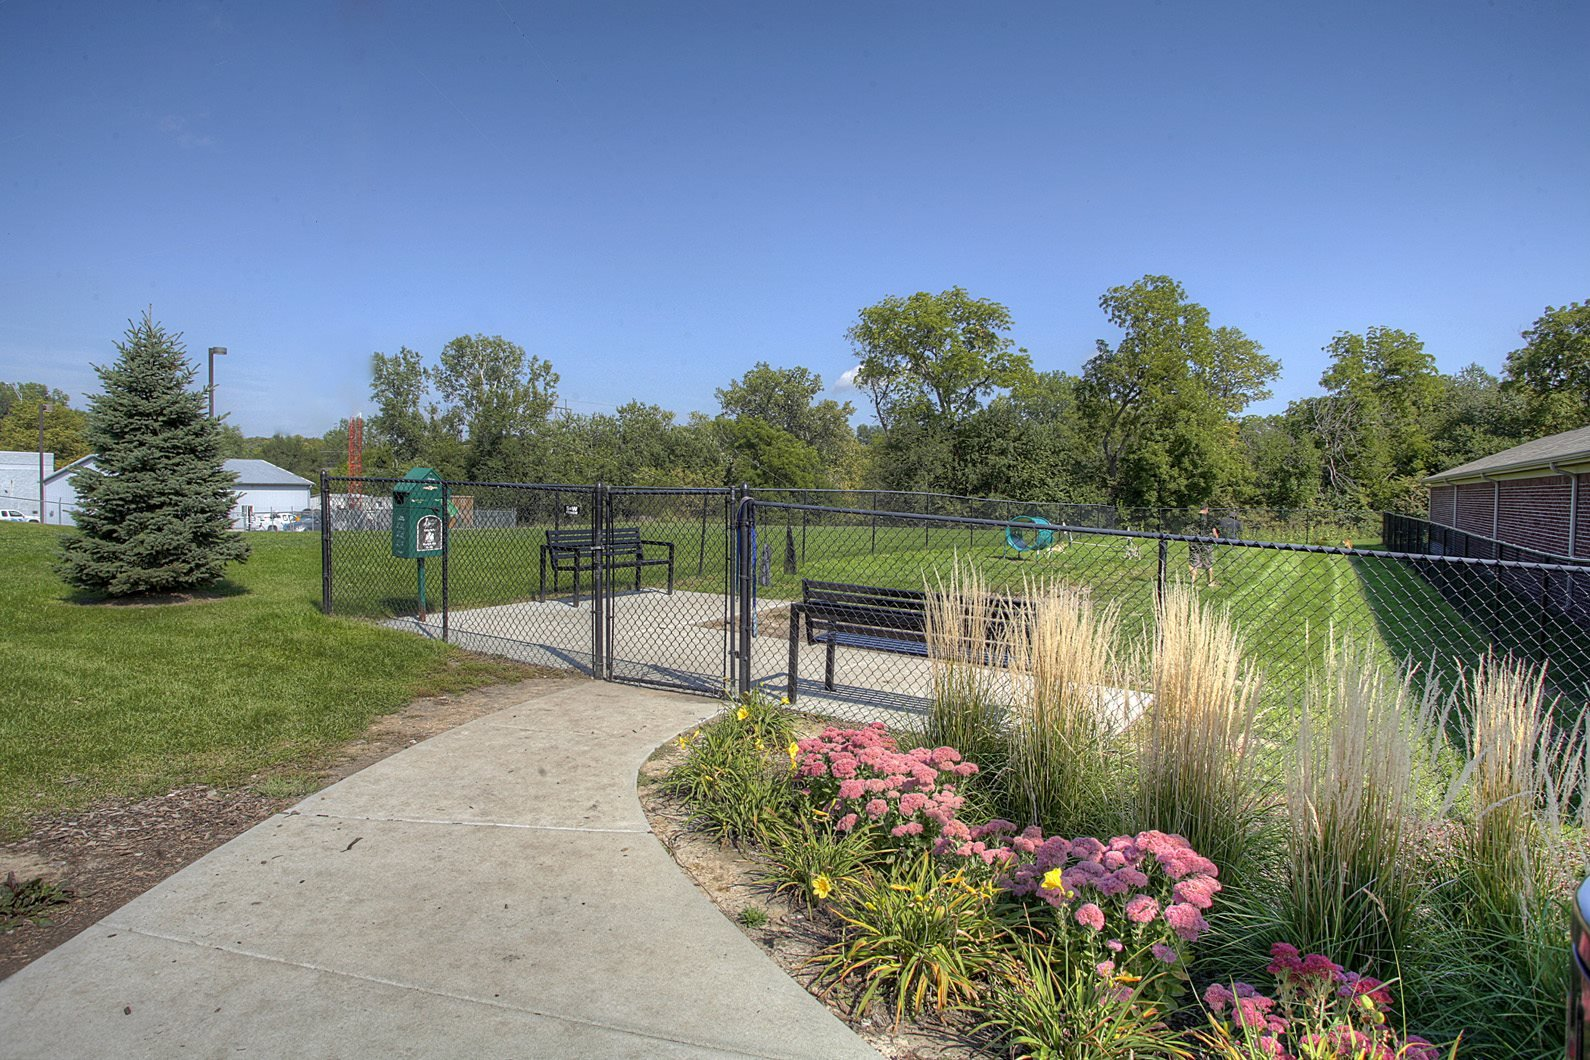 Leash Free Bark Park at Landings, The, Bellevue, NE,68123